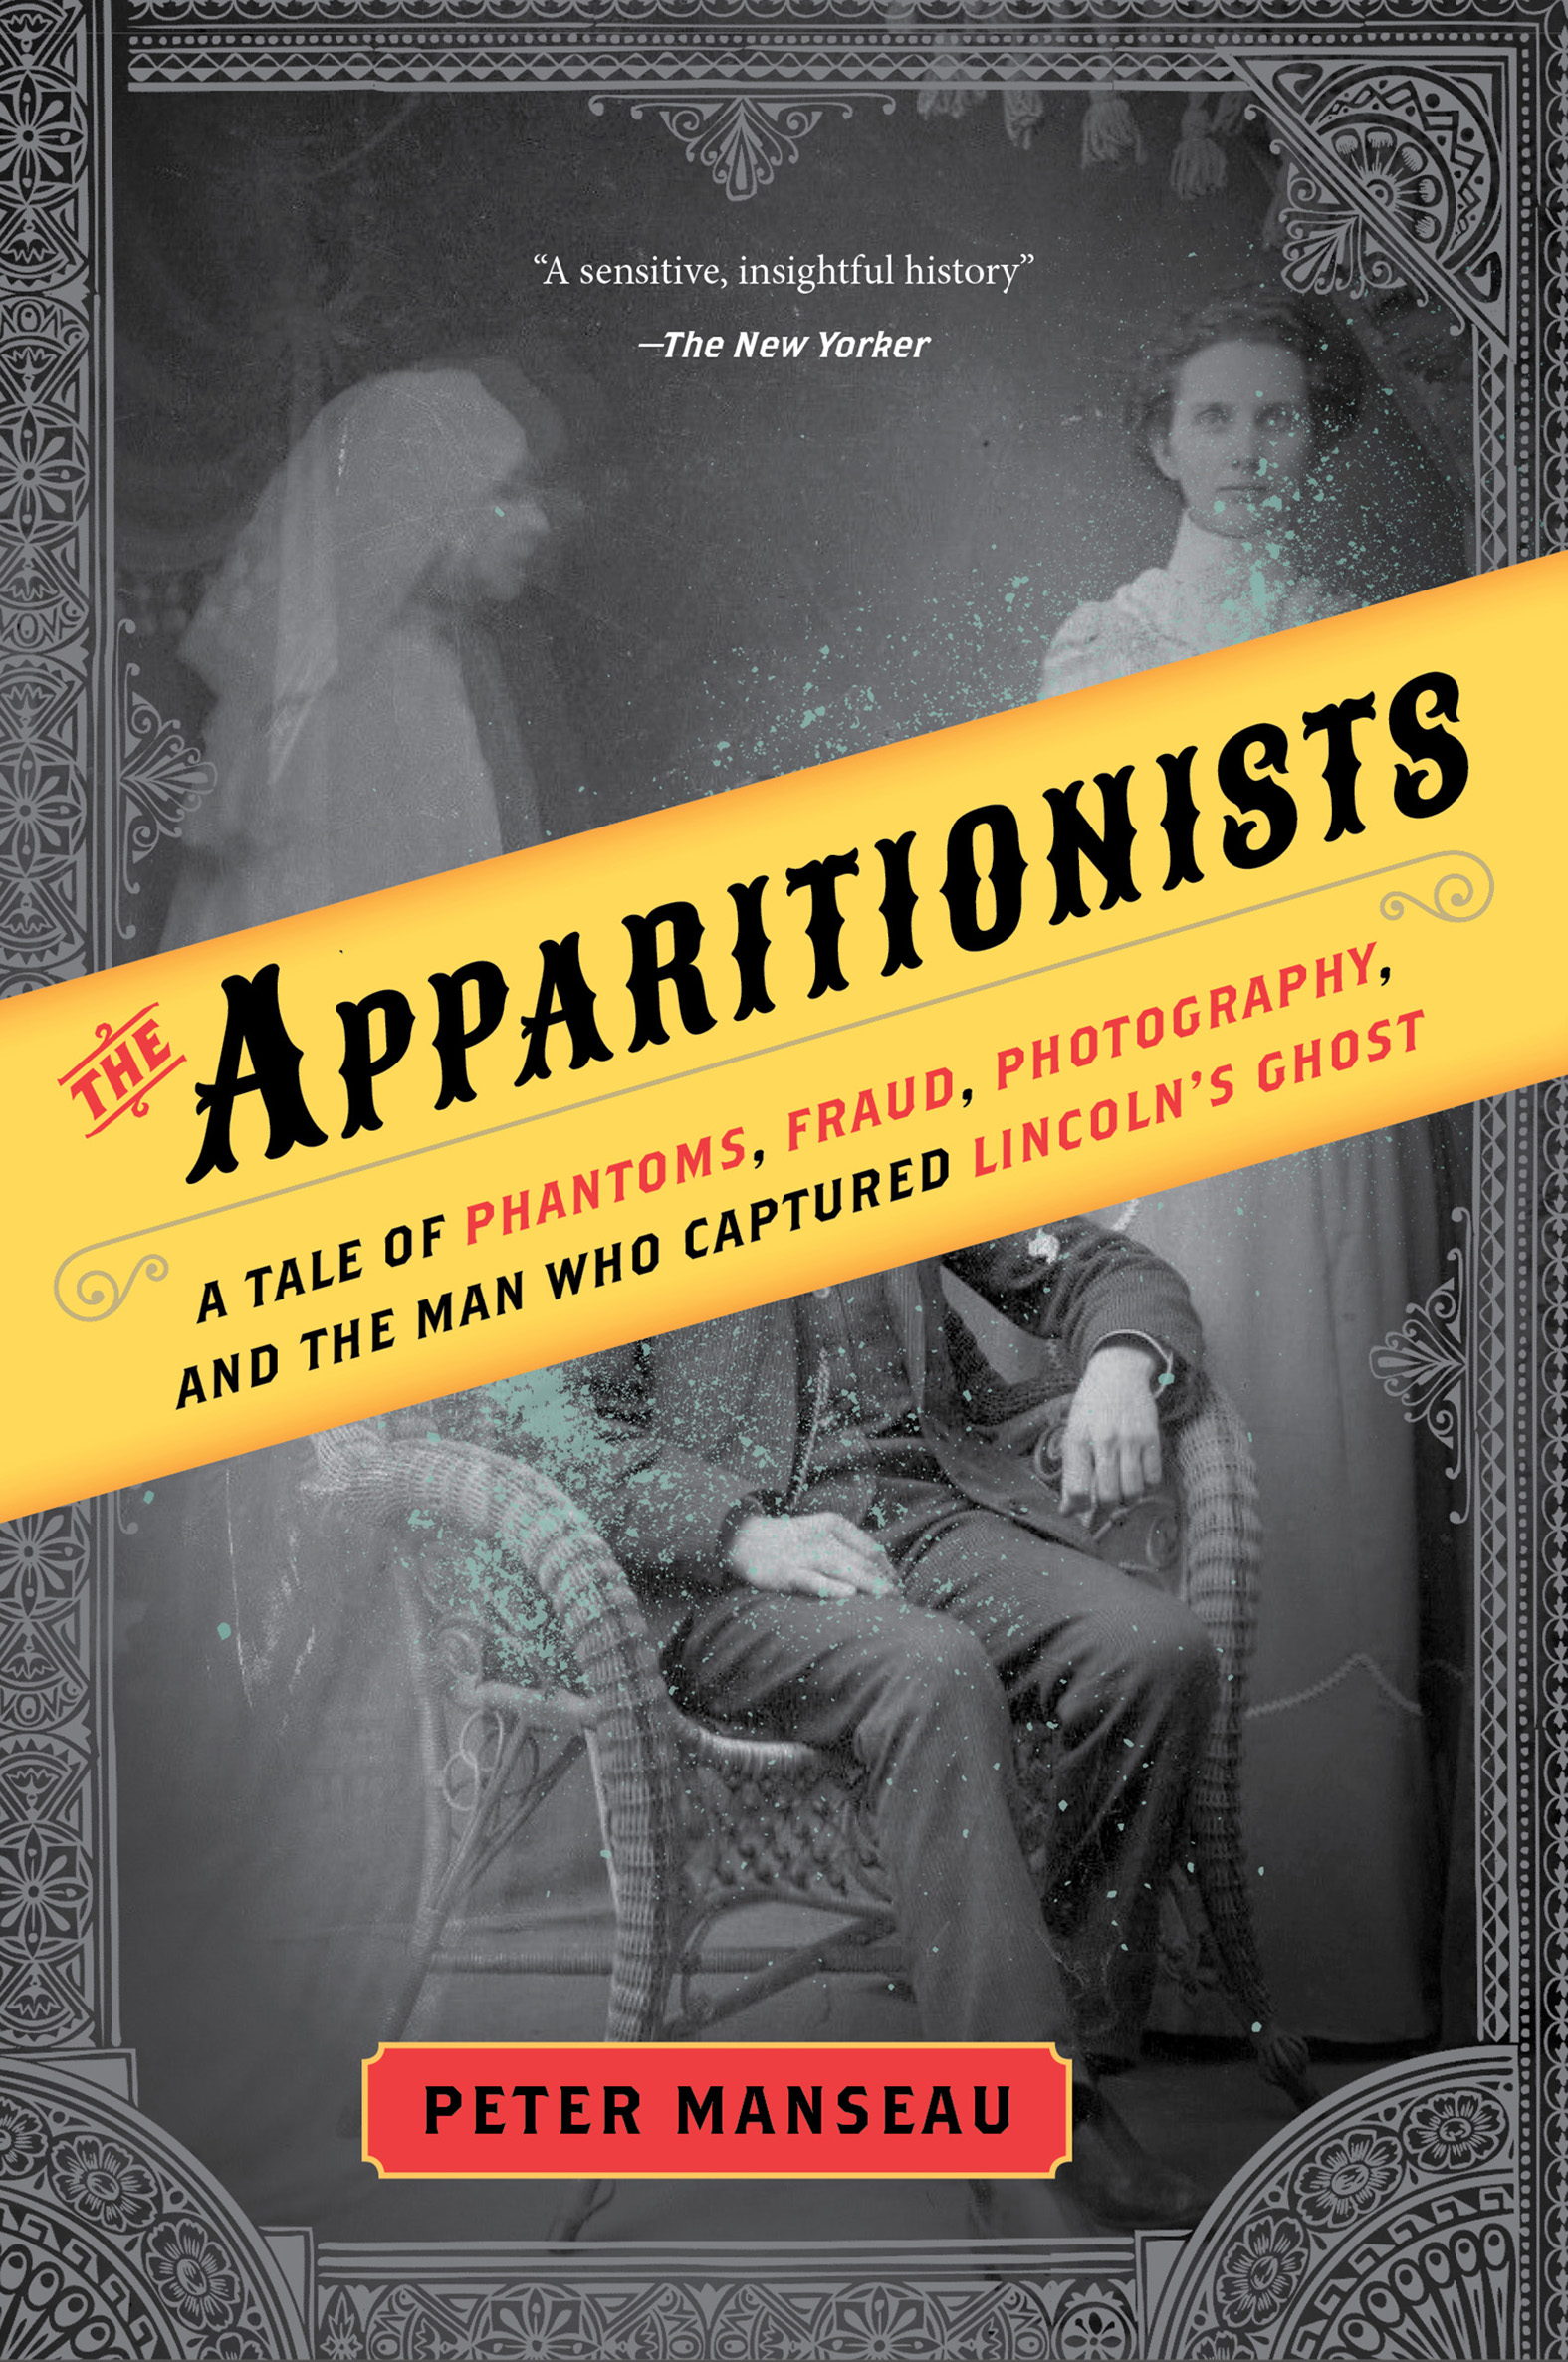 The Apparitionists A Tale of Phantoms, Fraud, Photography, and the Man Who Captured Lincoln's Ghost